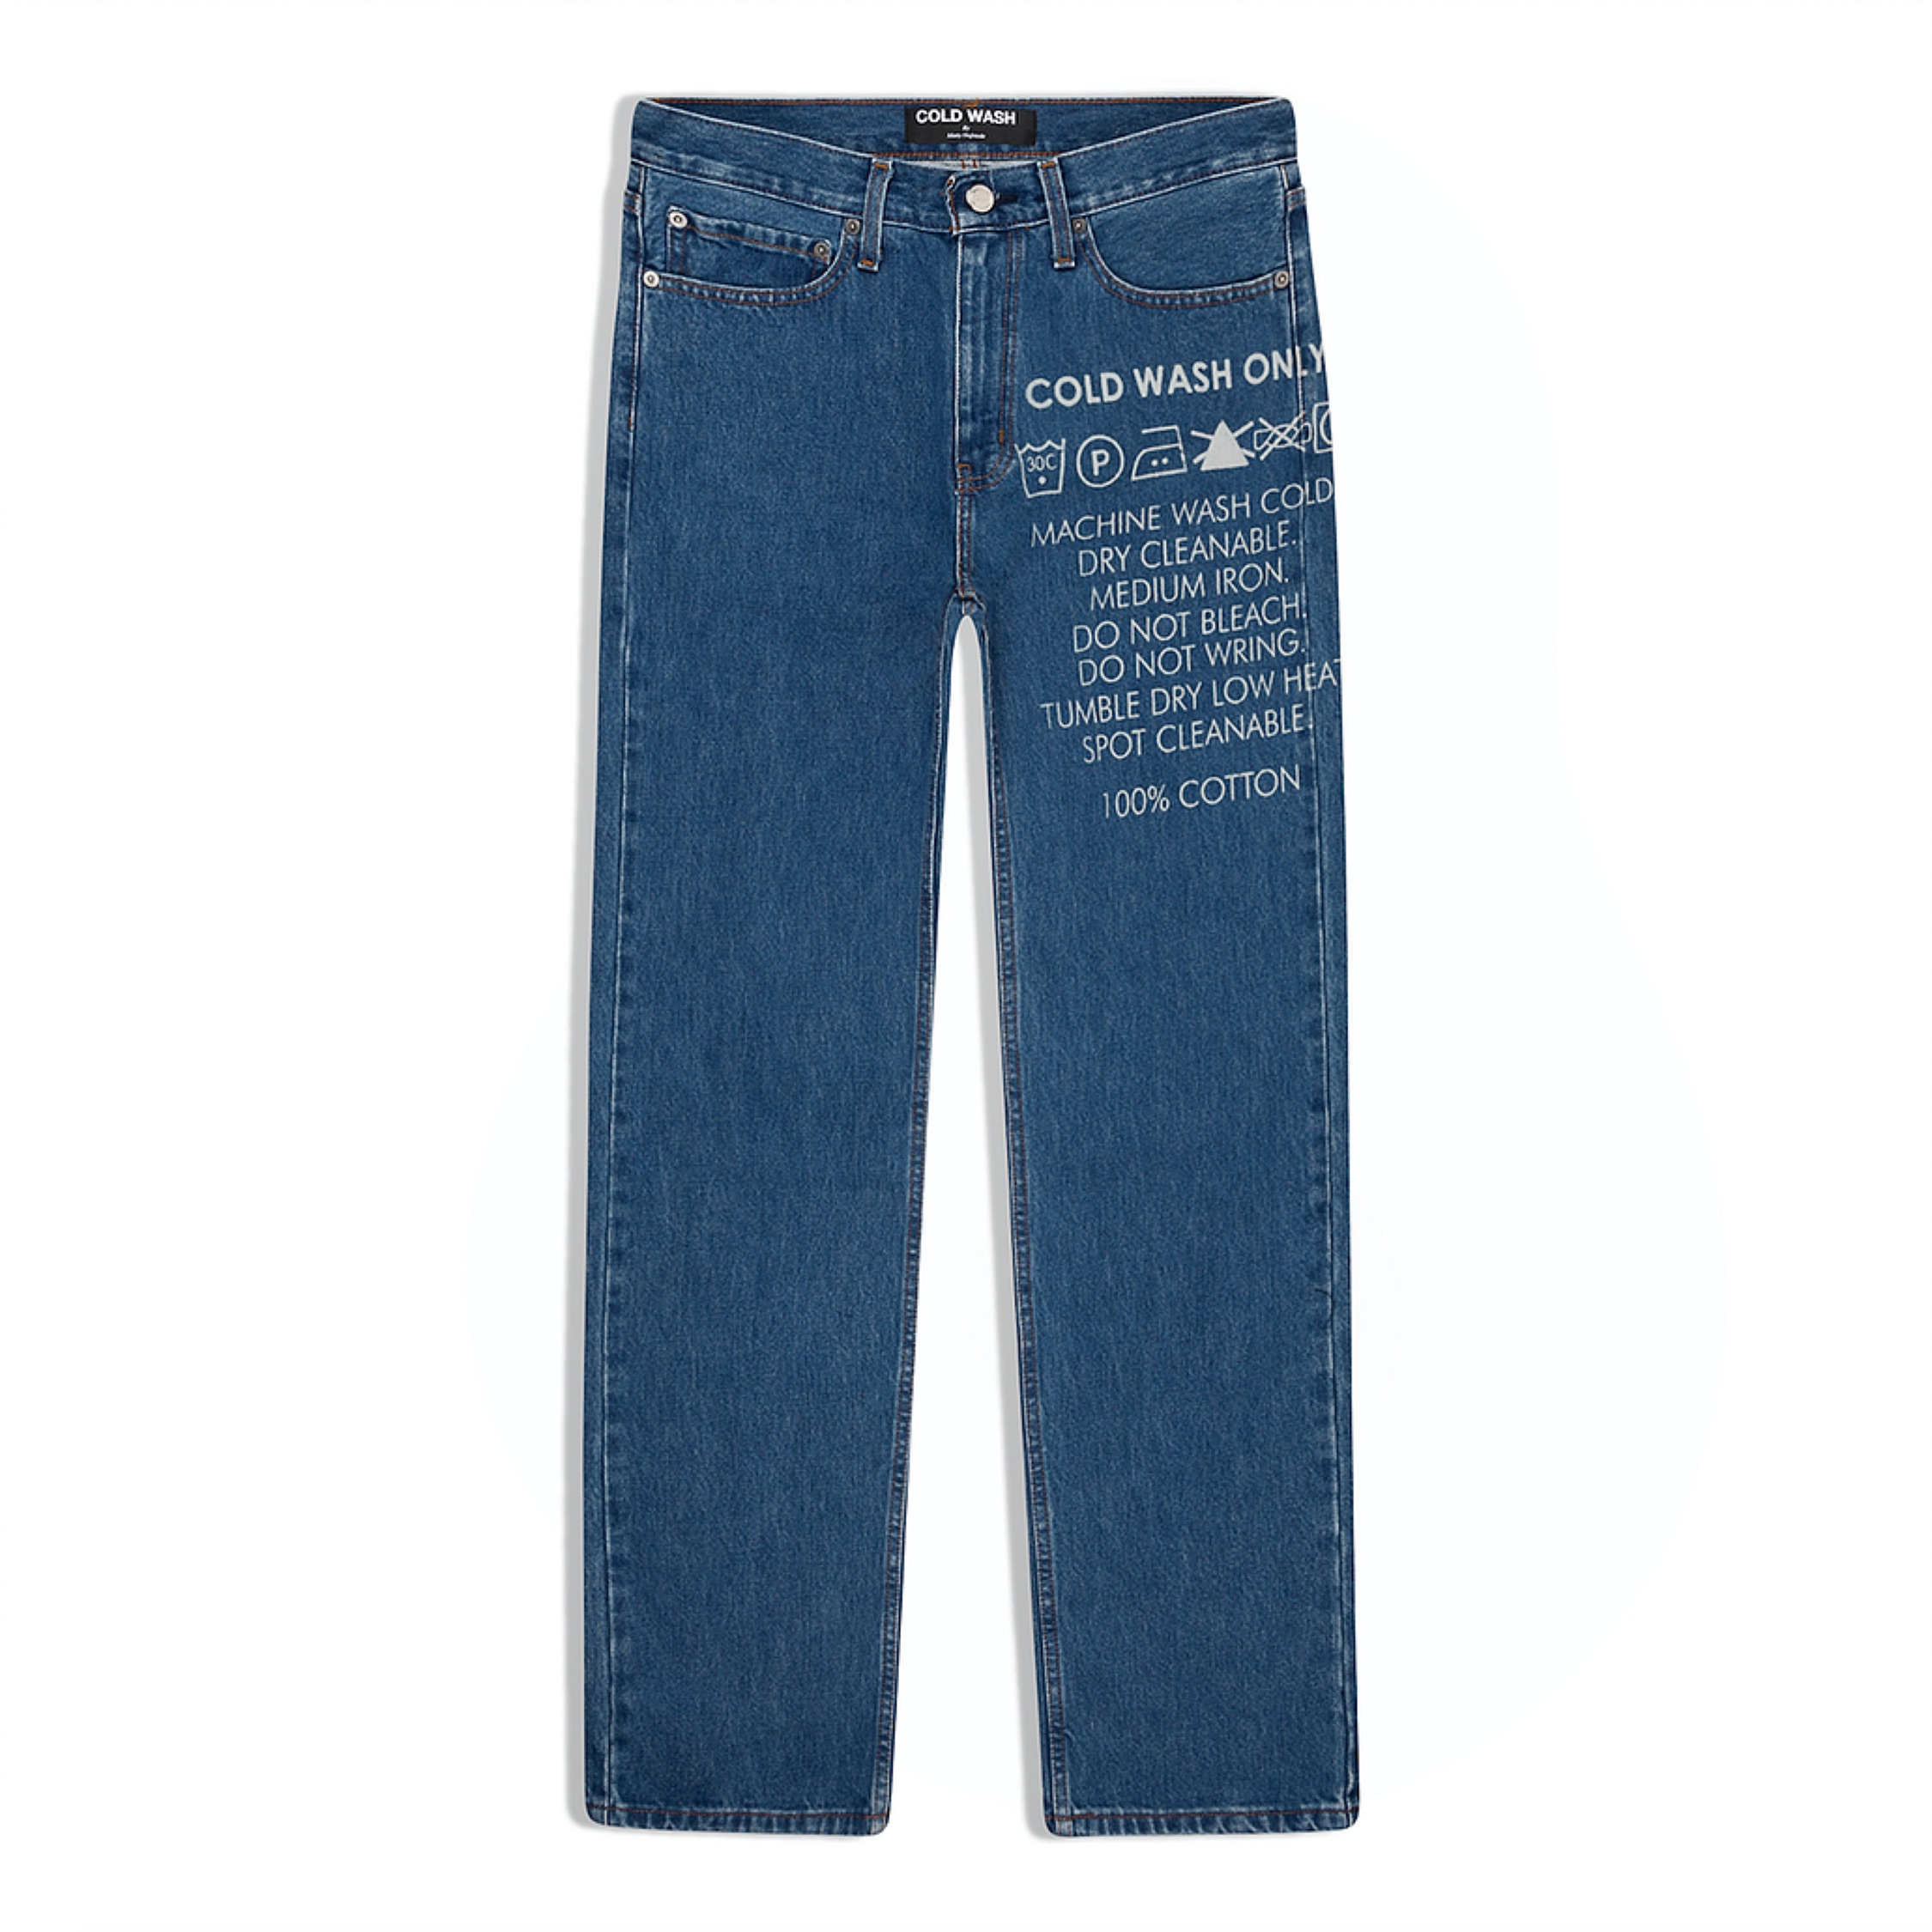 Cold Wash Lasered Jeans